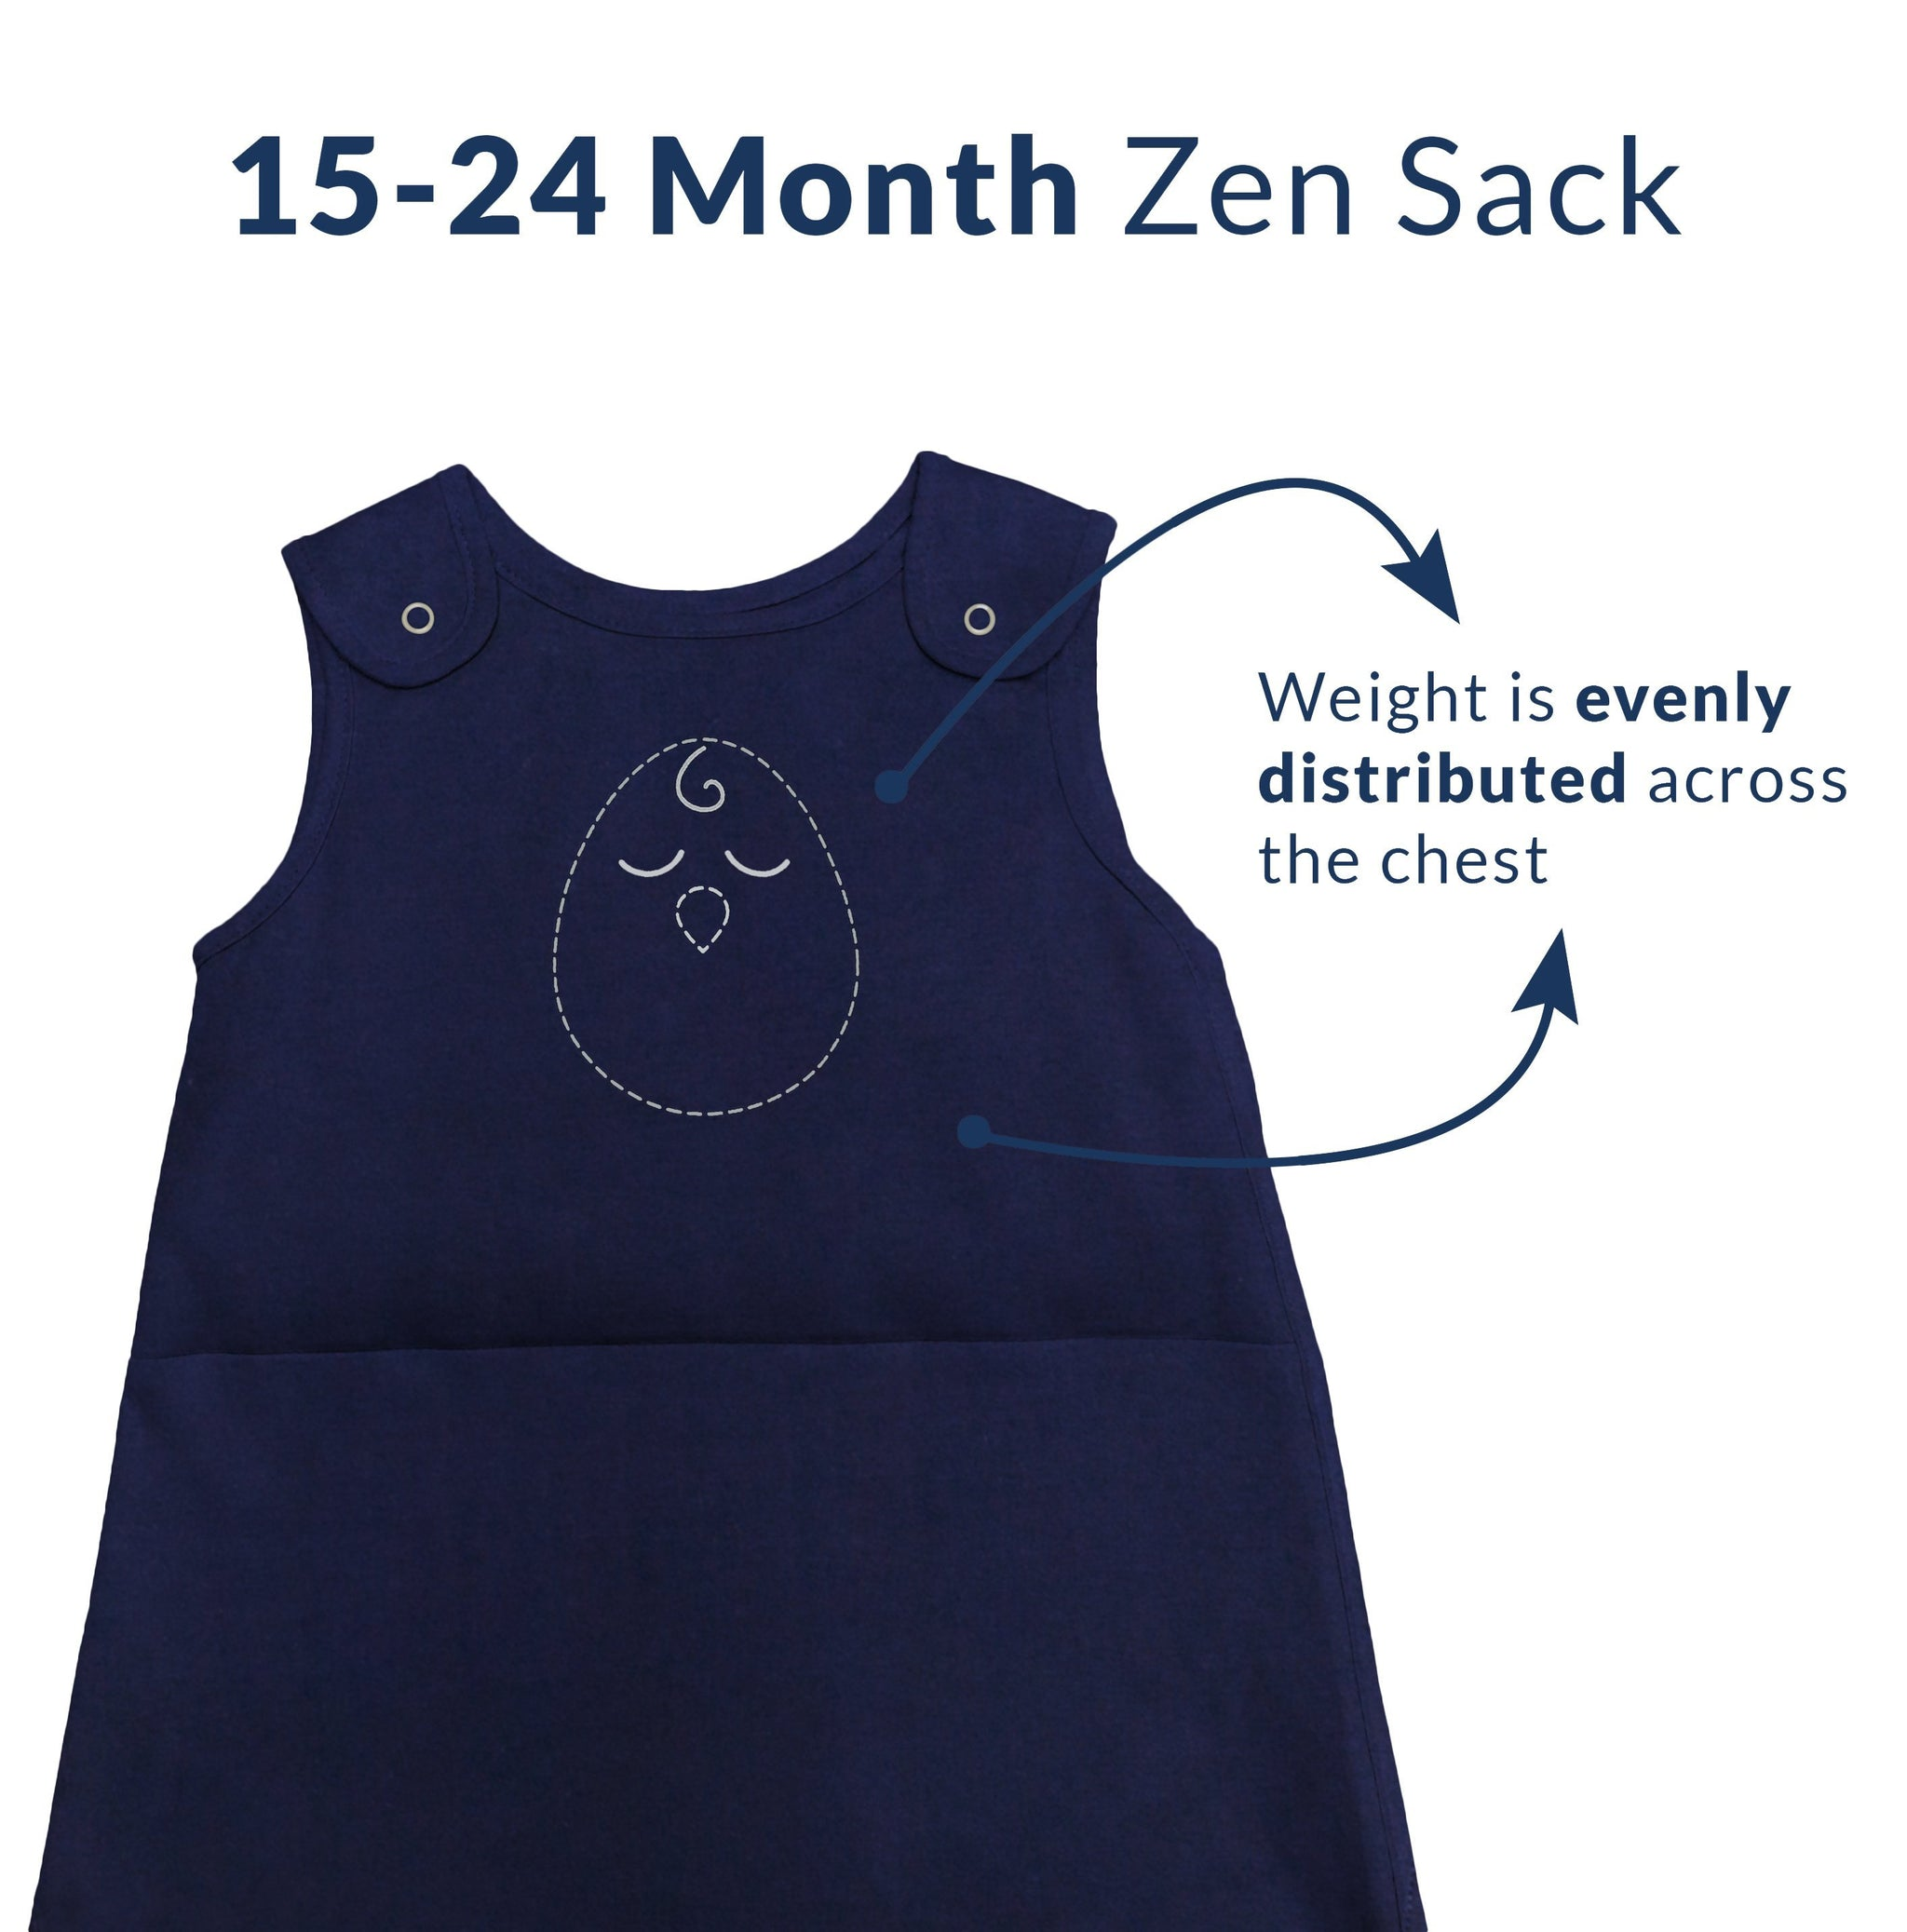 Zen Sack Limited Edition